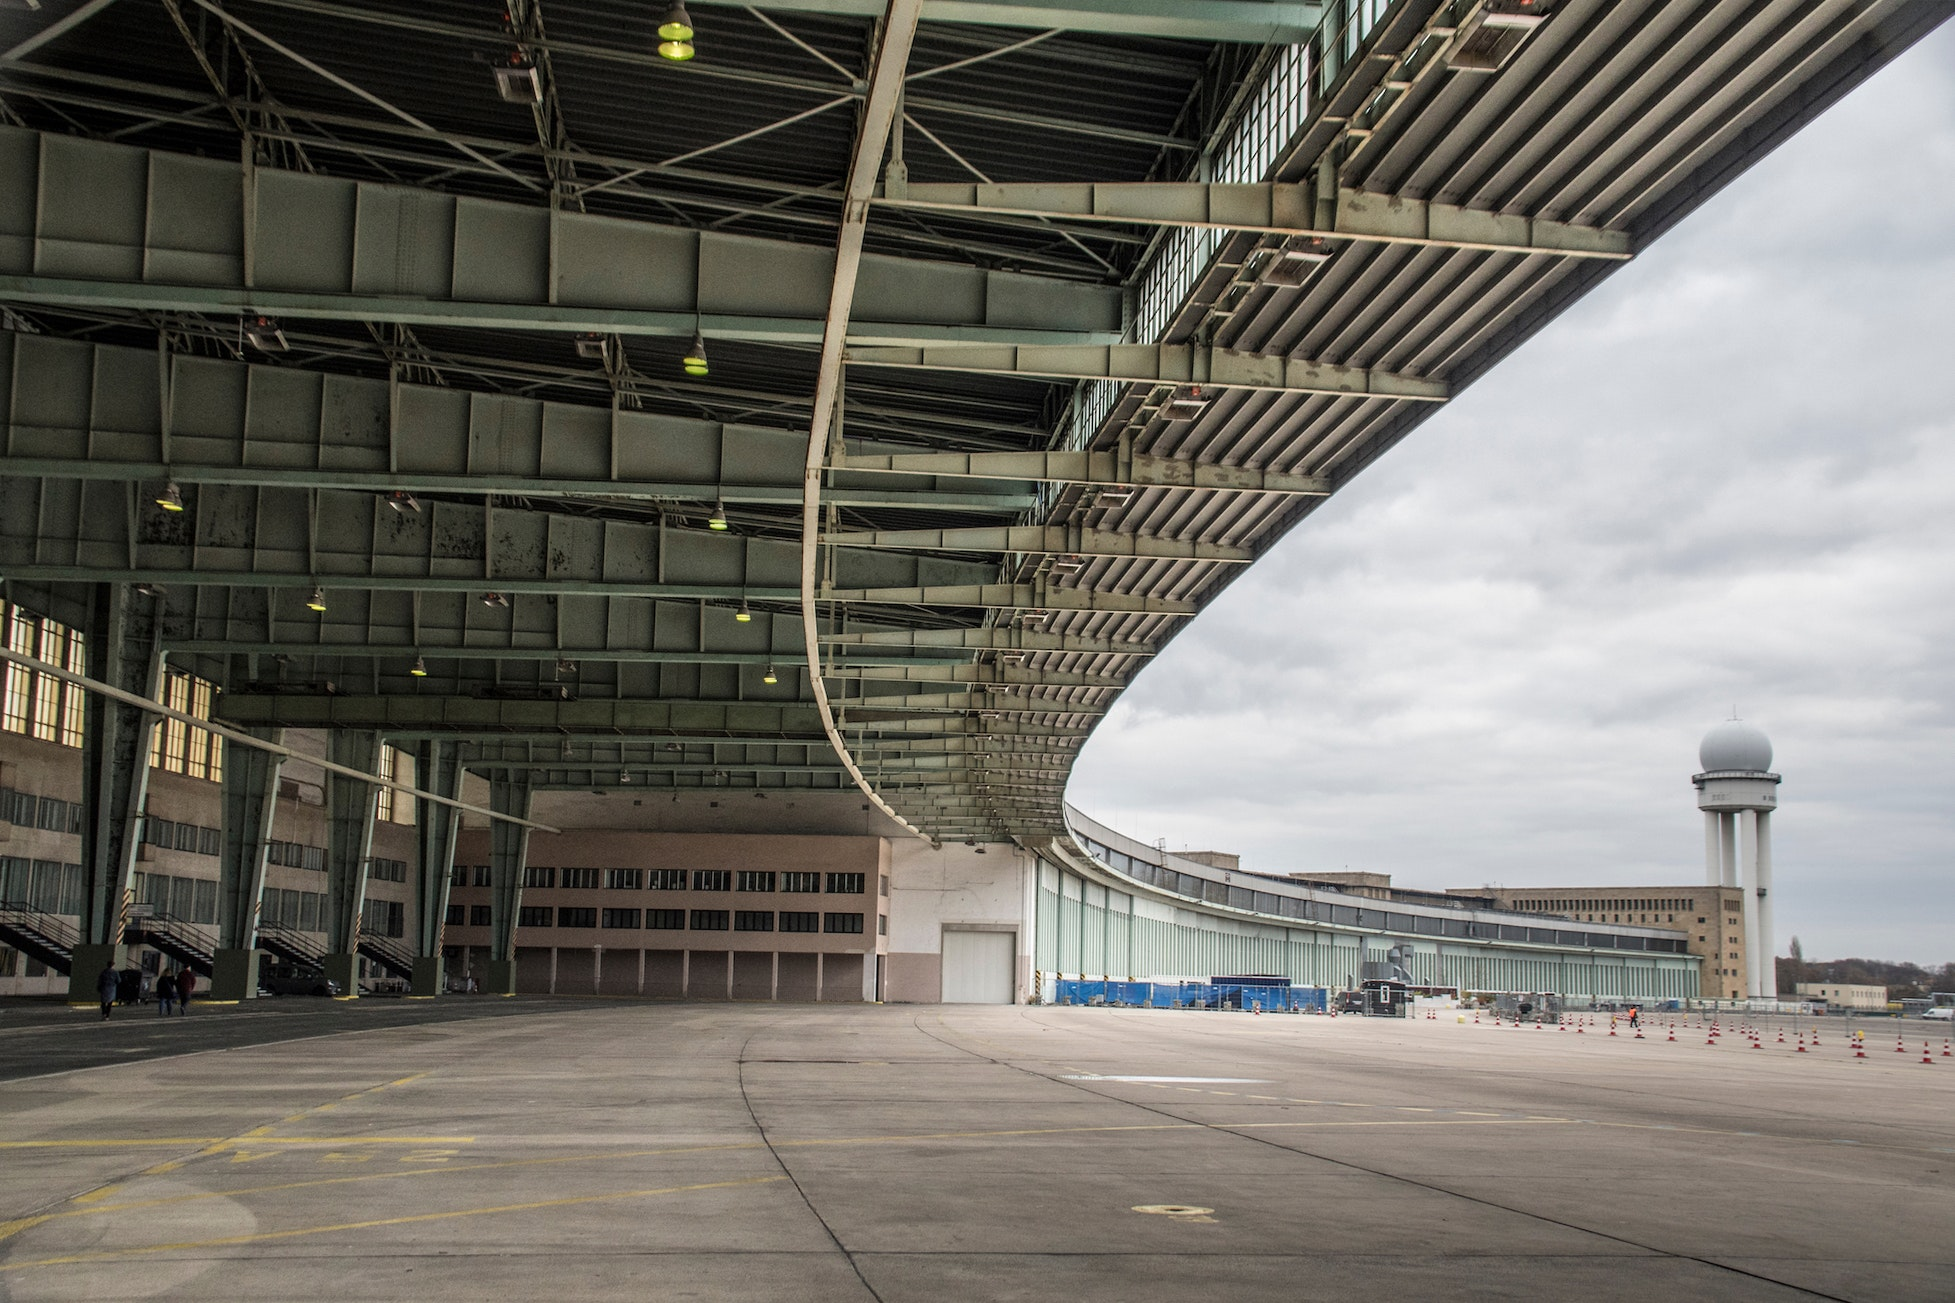 The decommissioned Tempelhof Airport was the site of Nazi rallies and the Berlin Airlift.